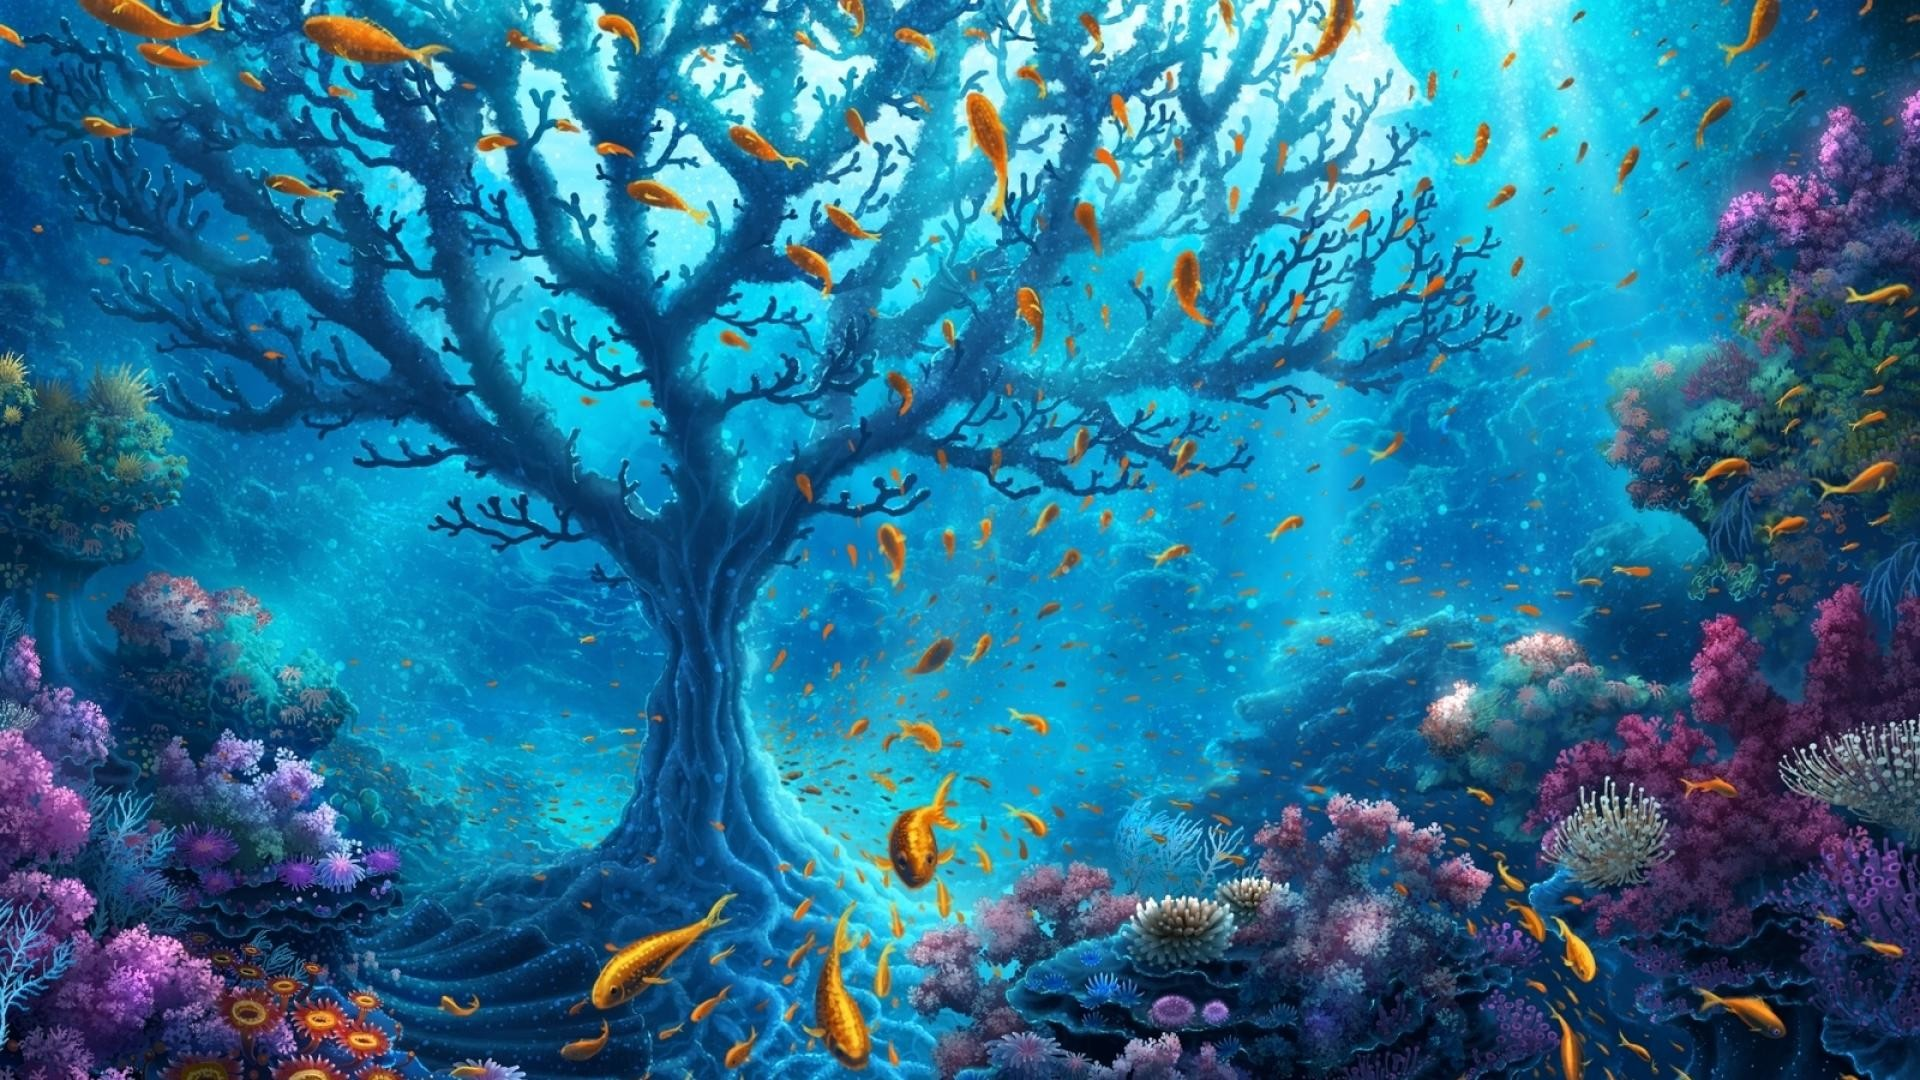 Res: 1920x1080, Fantasy Underwater Wallpapers 7 - 1920 X 1080